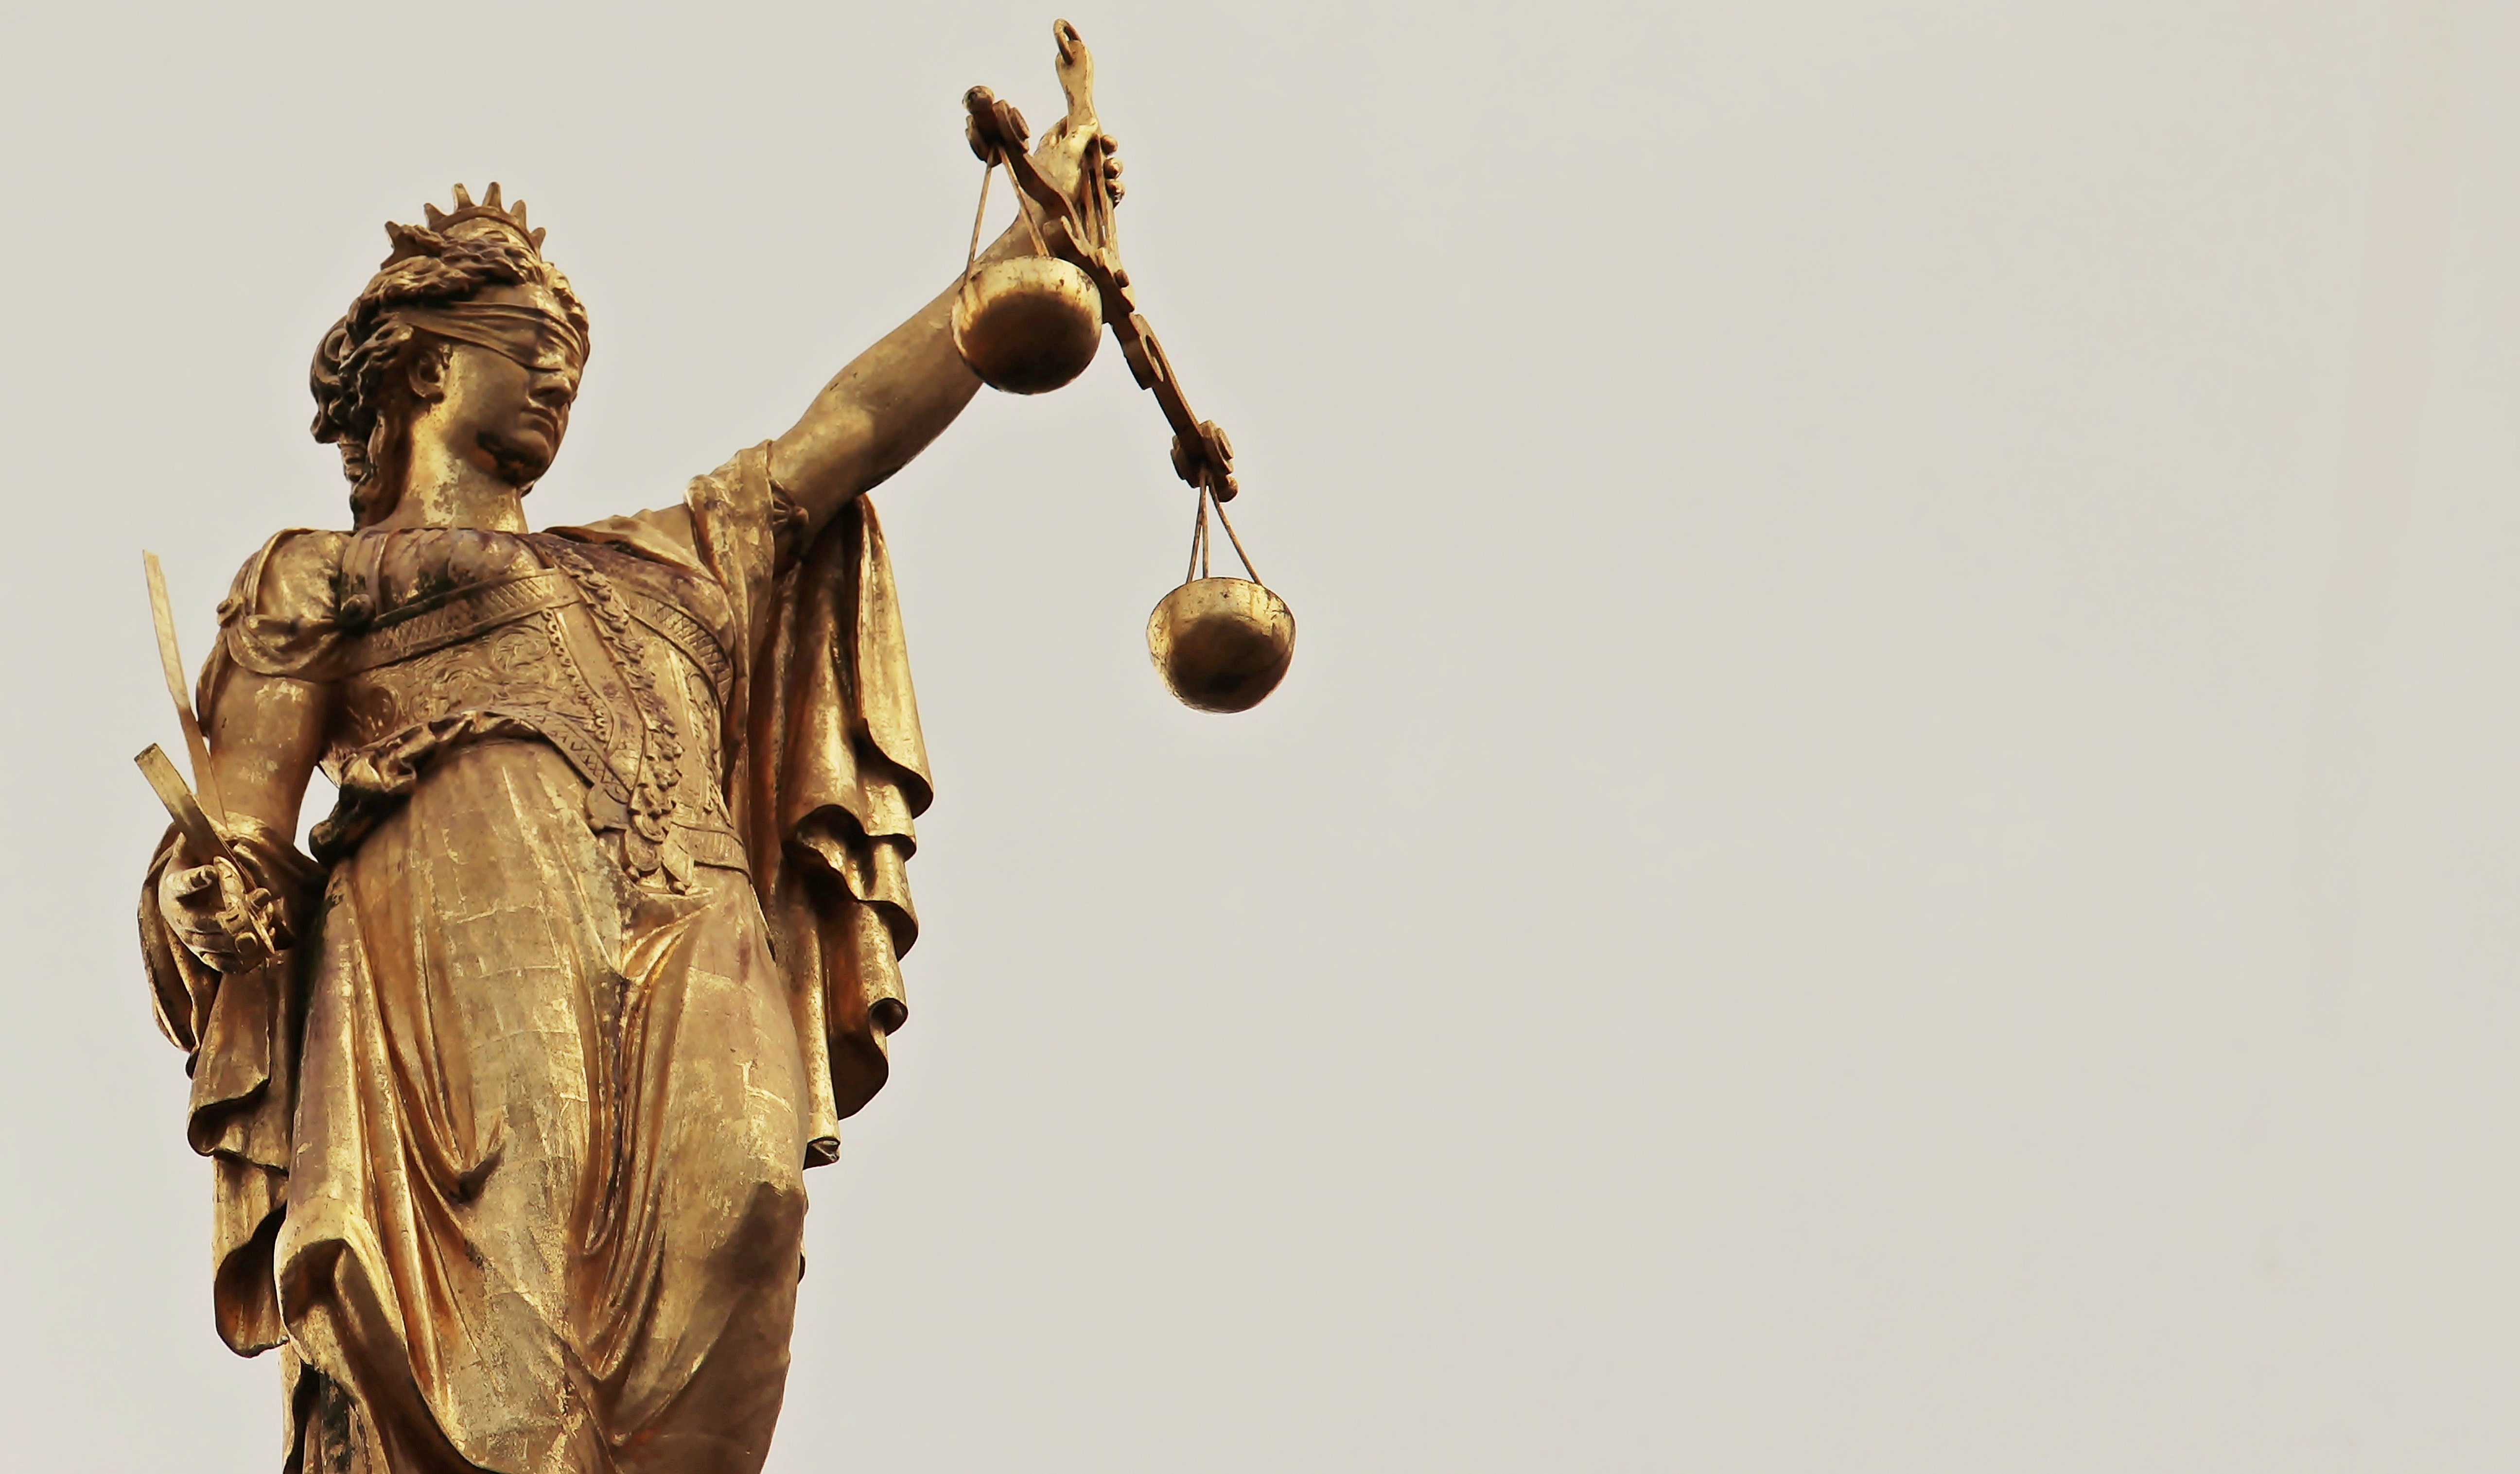 A statue of Lady Justice, Justitia. She is blindfolded and holds a balance and a sword.